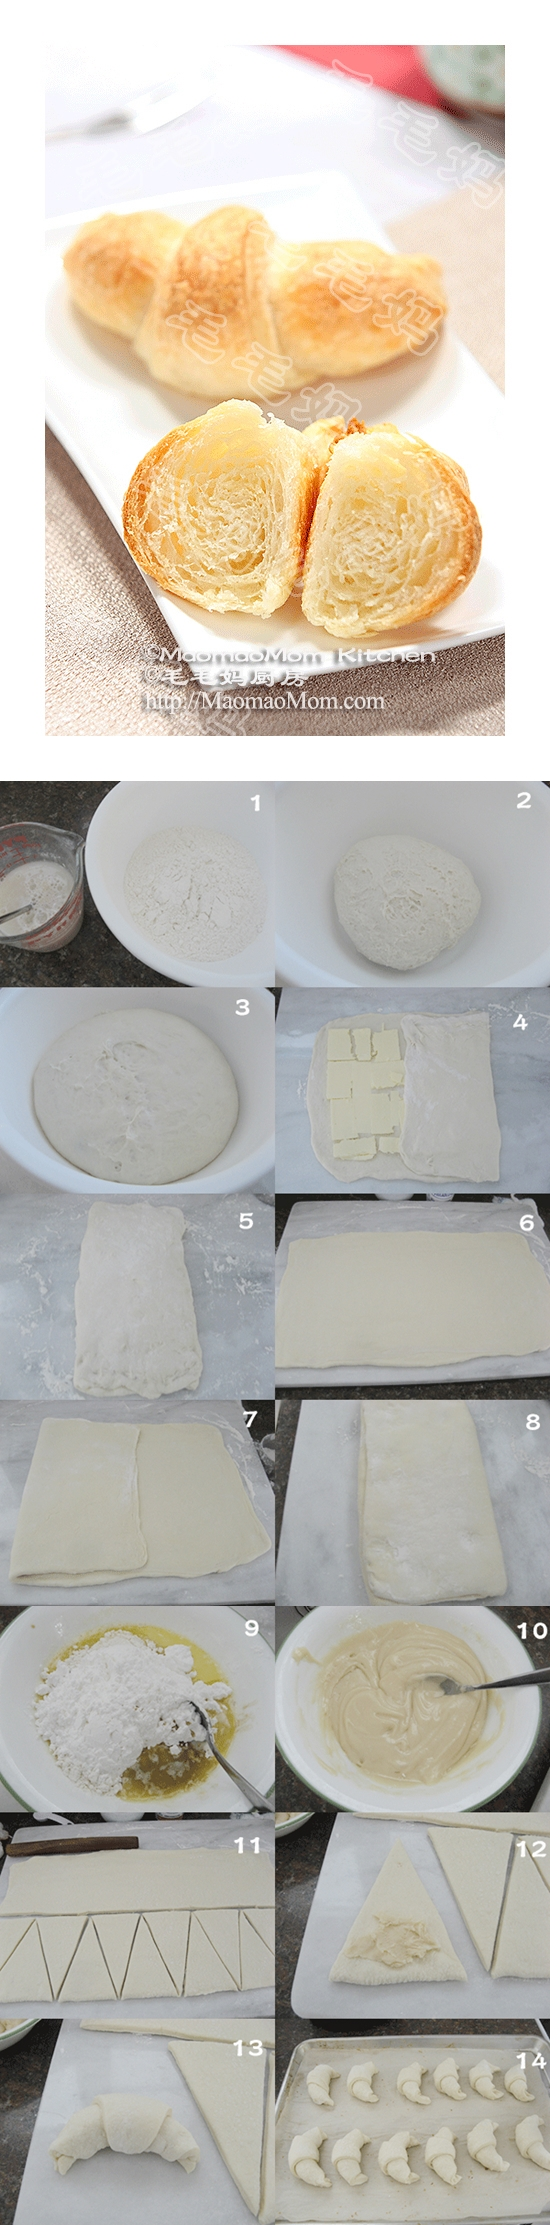 how to make Sweet French Croissants step by step DIY instructions